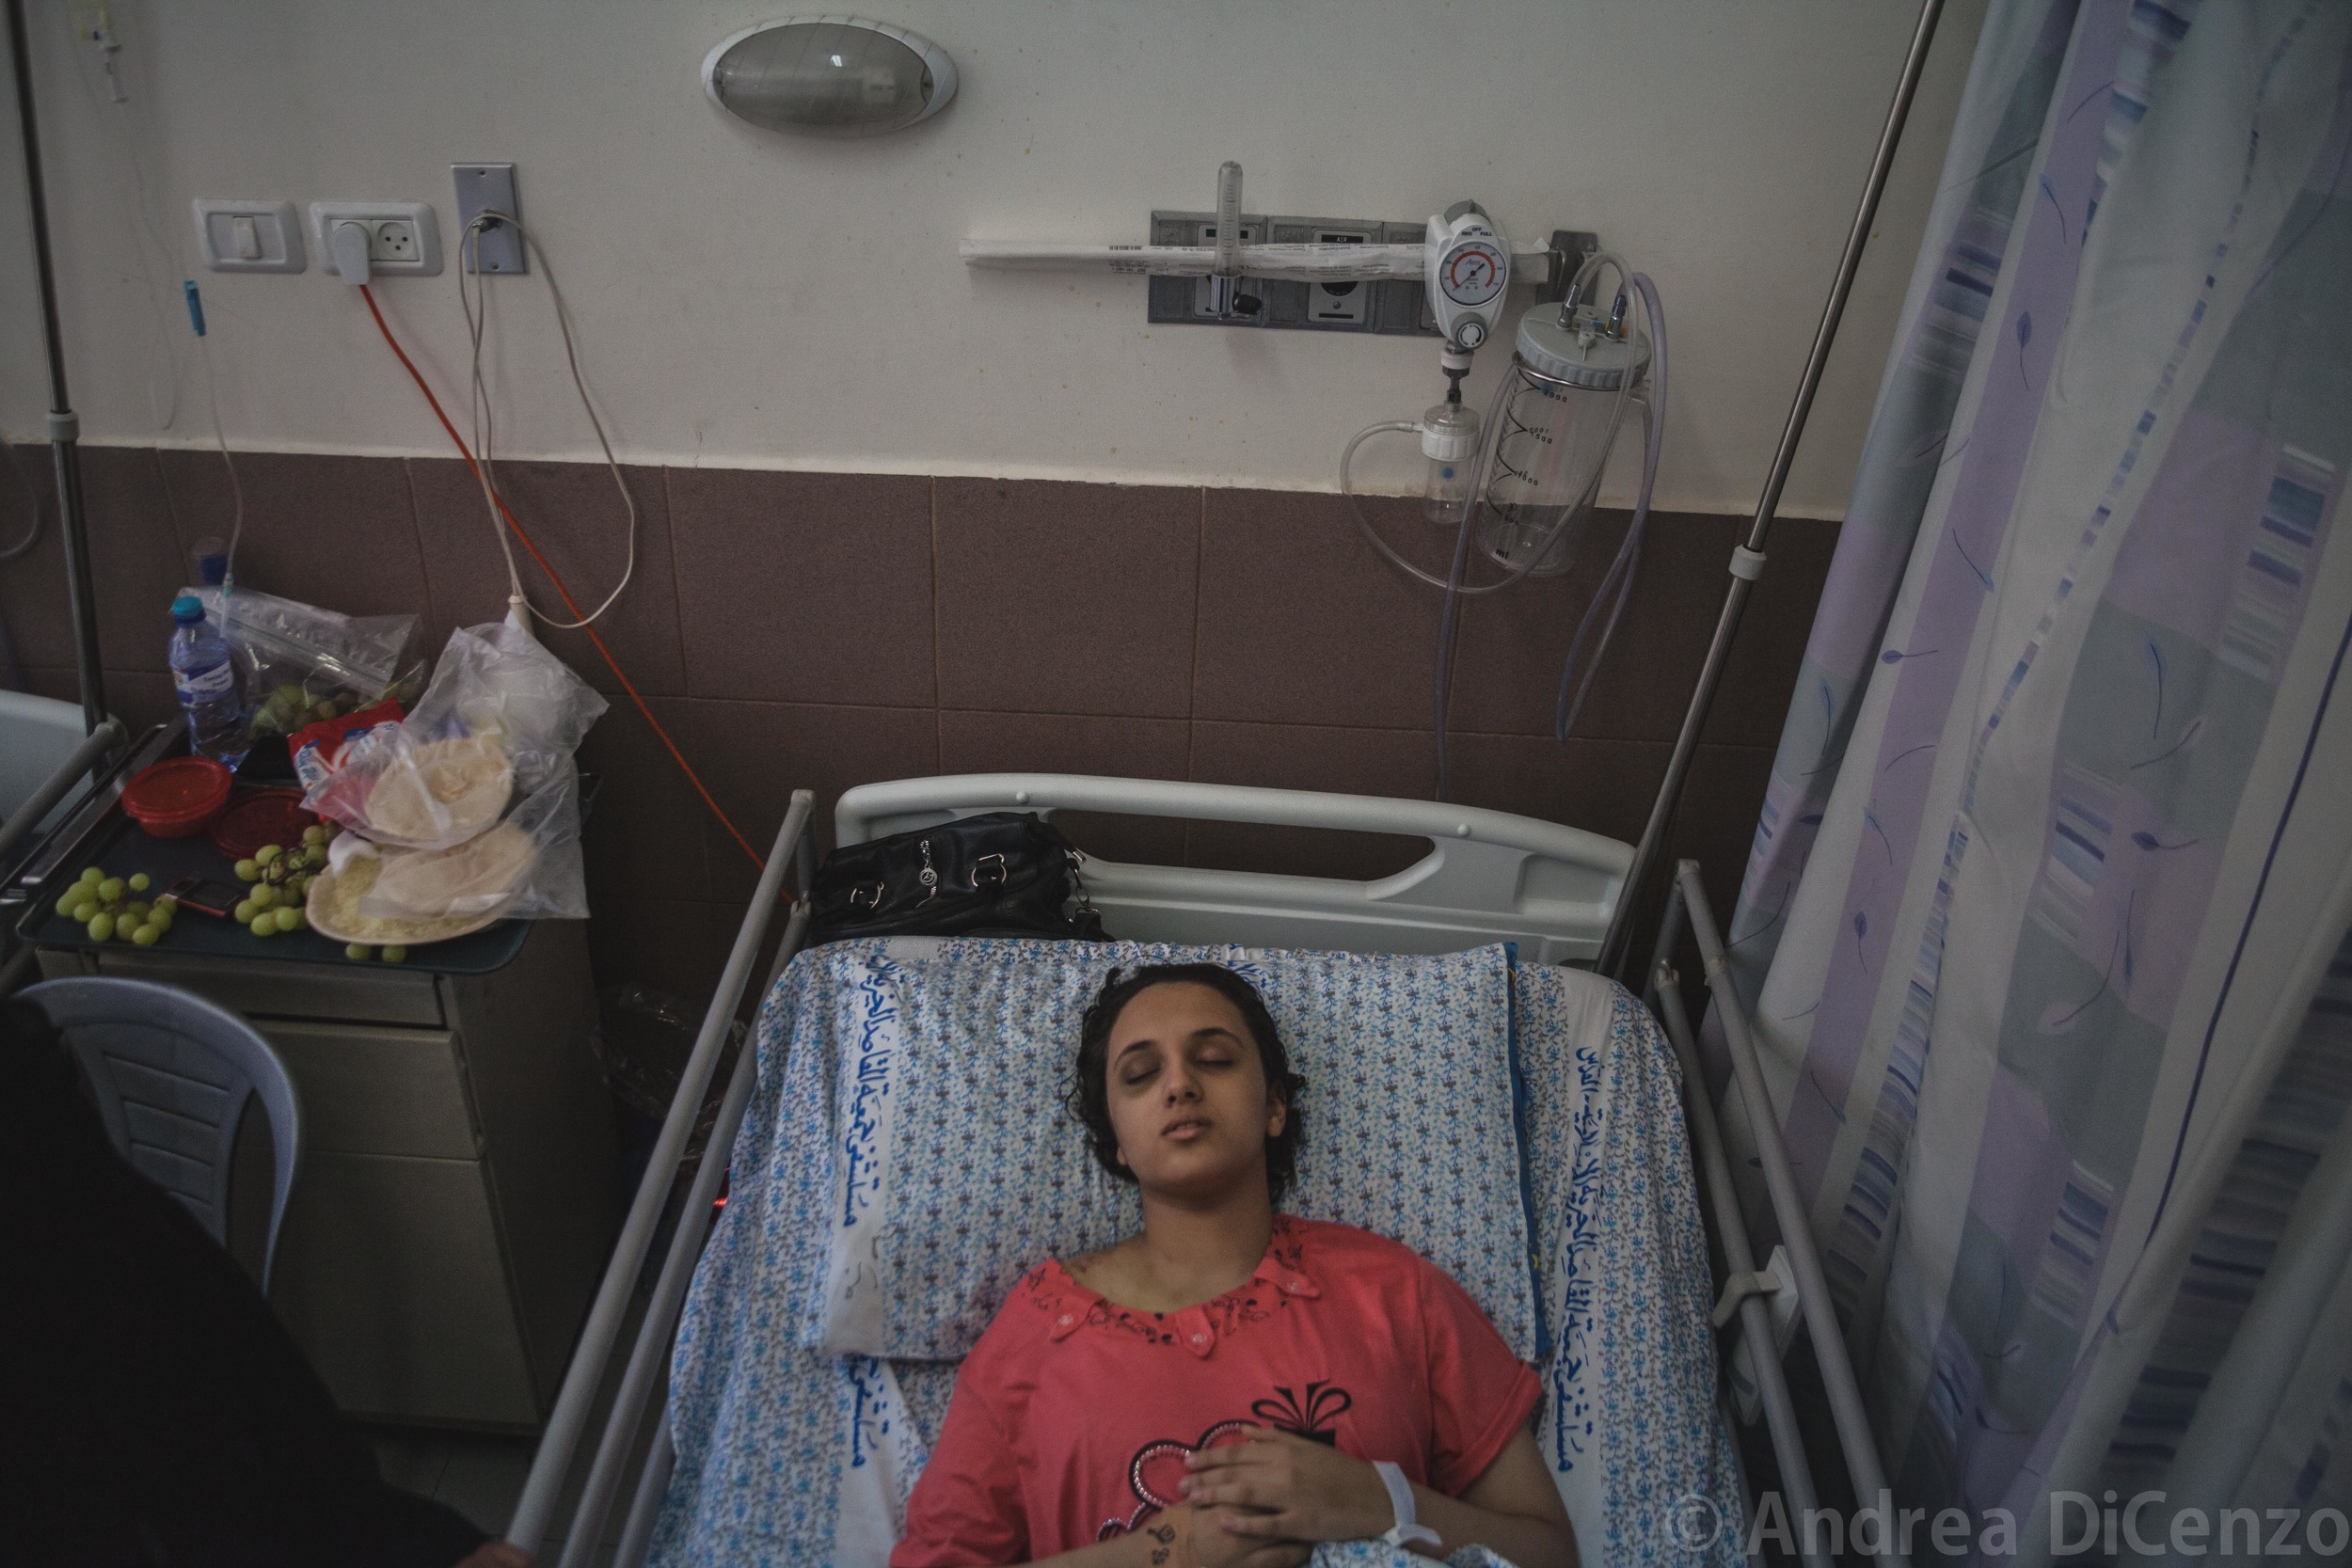 Ahad, 14, is coming out of a coma in Al-MaKassed Hospital in East Jerusalem. She is unaware that her parents didn't survive the attack.